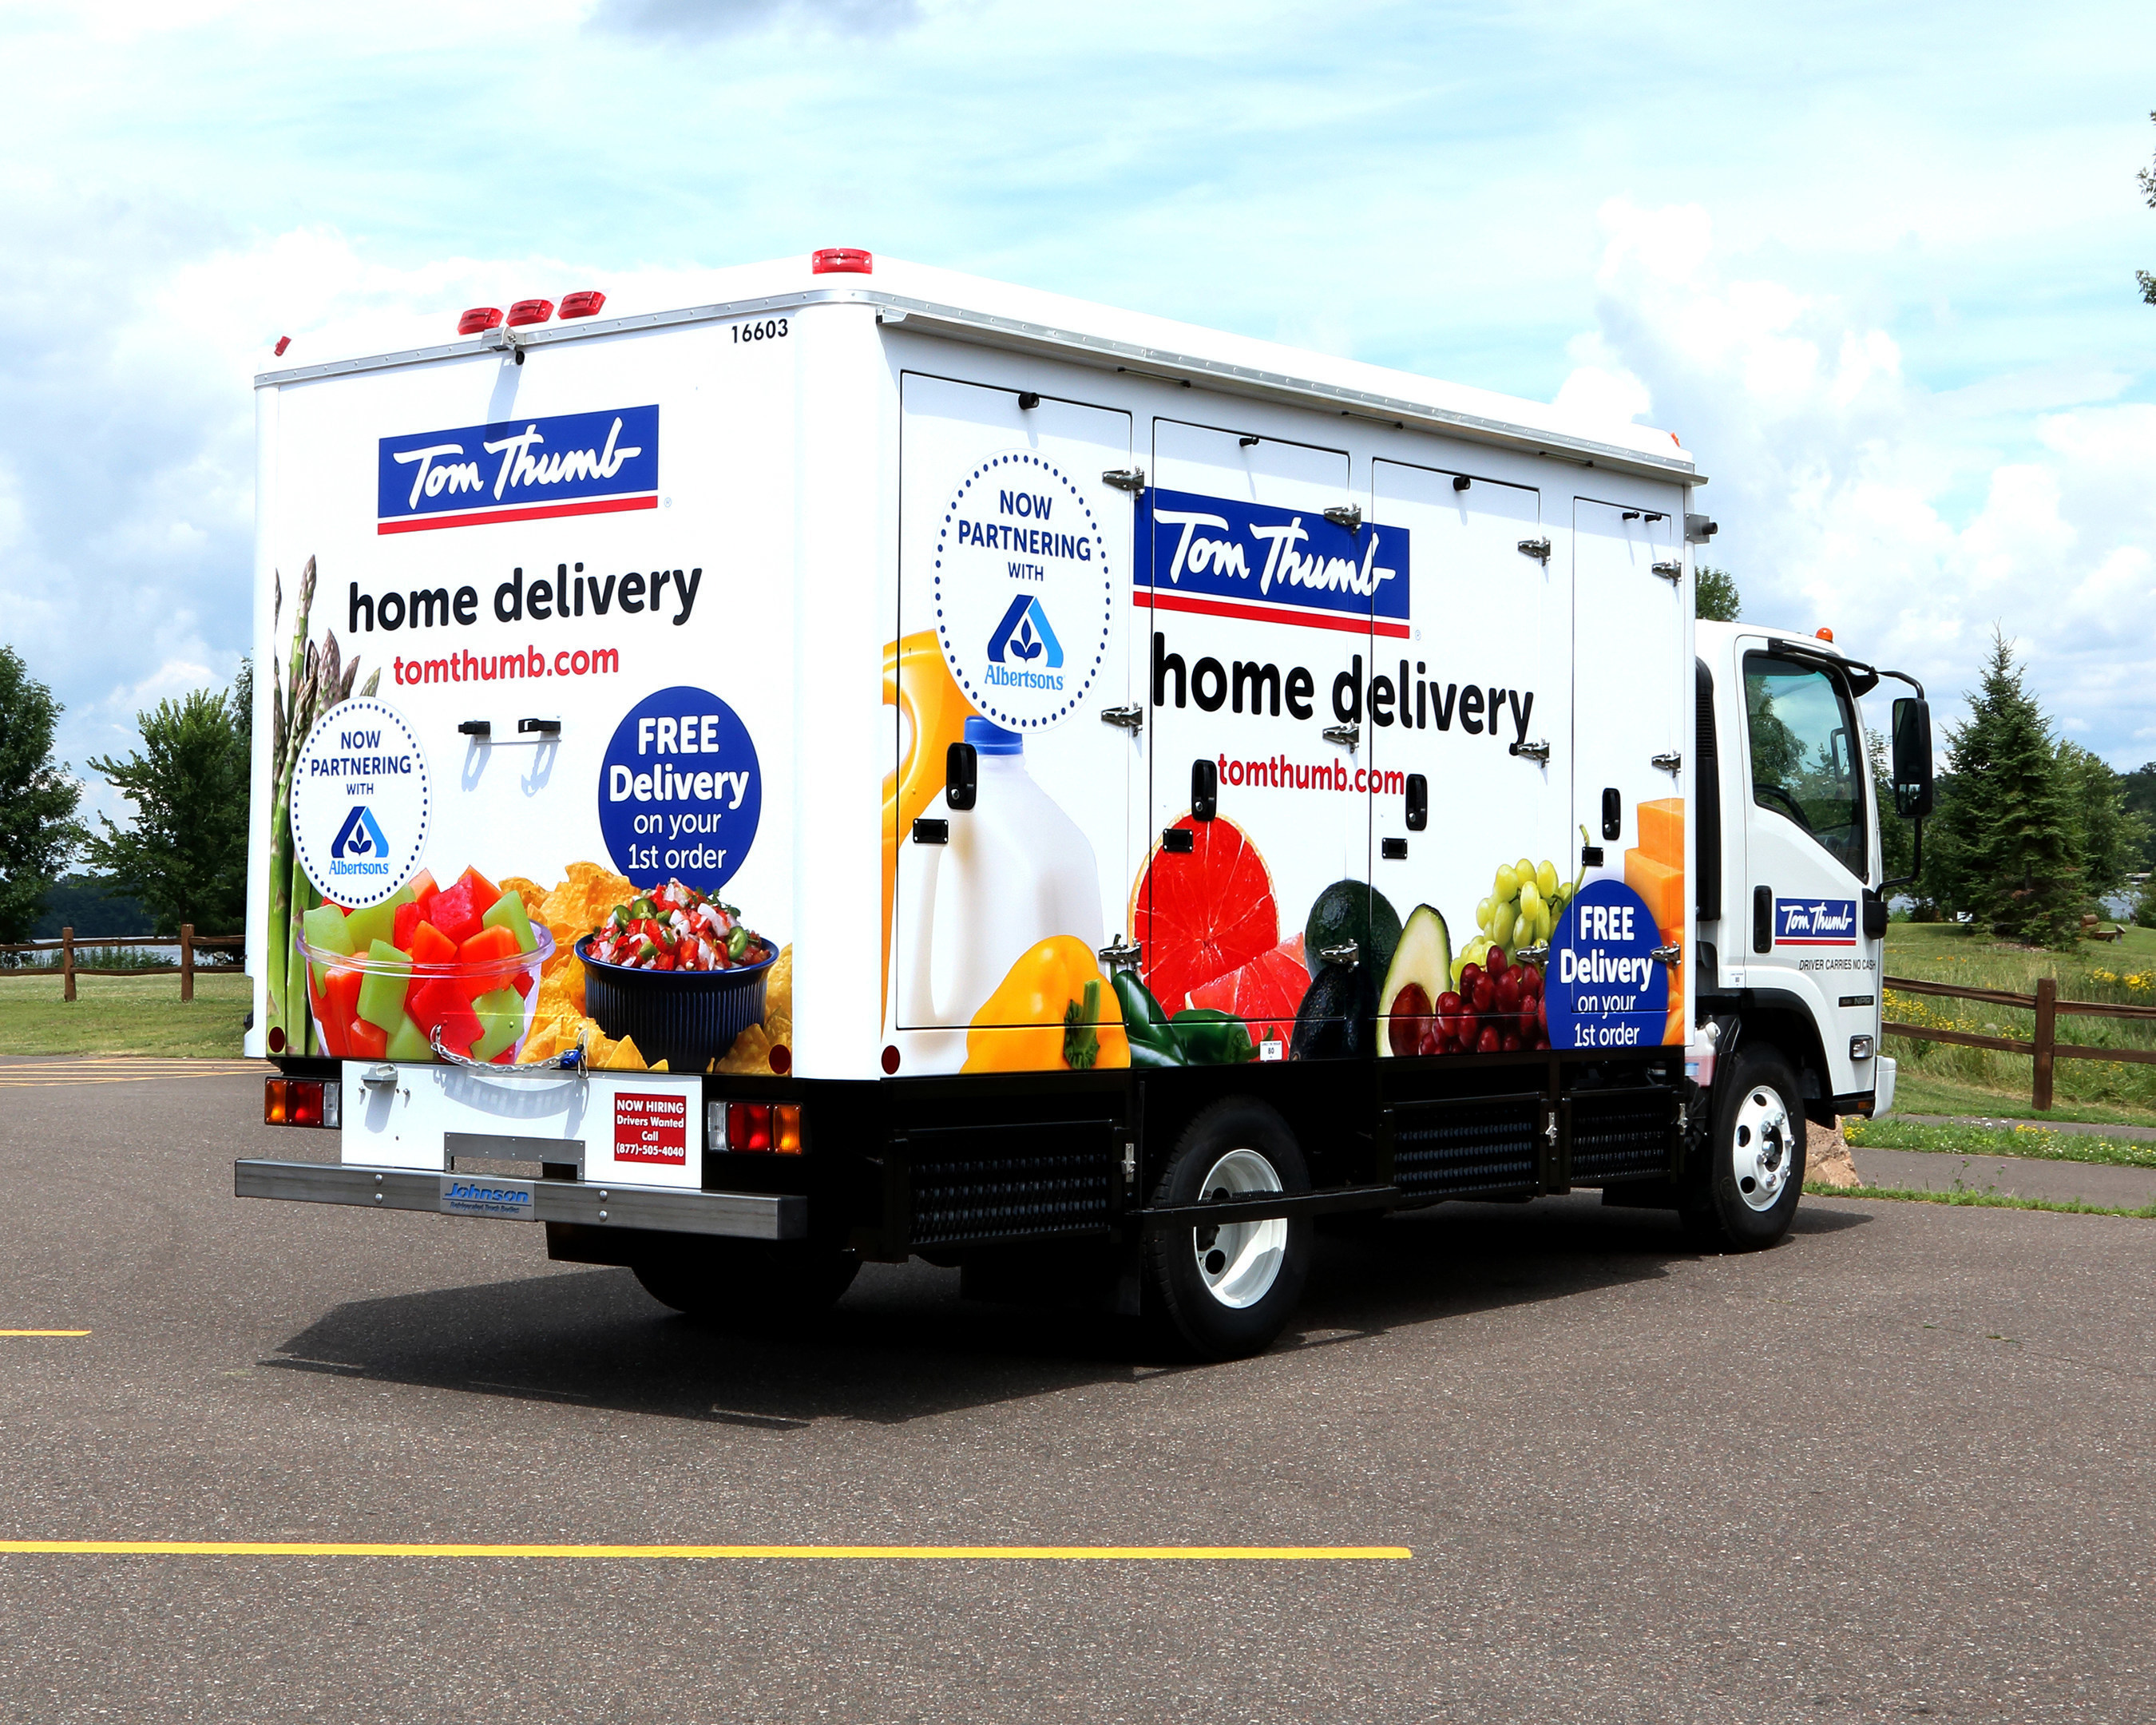 Tom Thumb Launches Grocery Delivery Service in North Texas